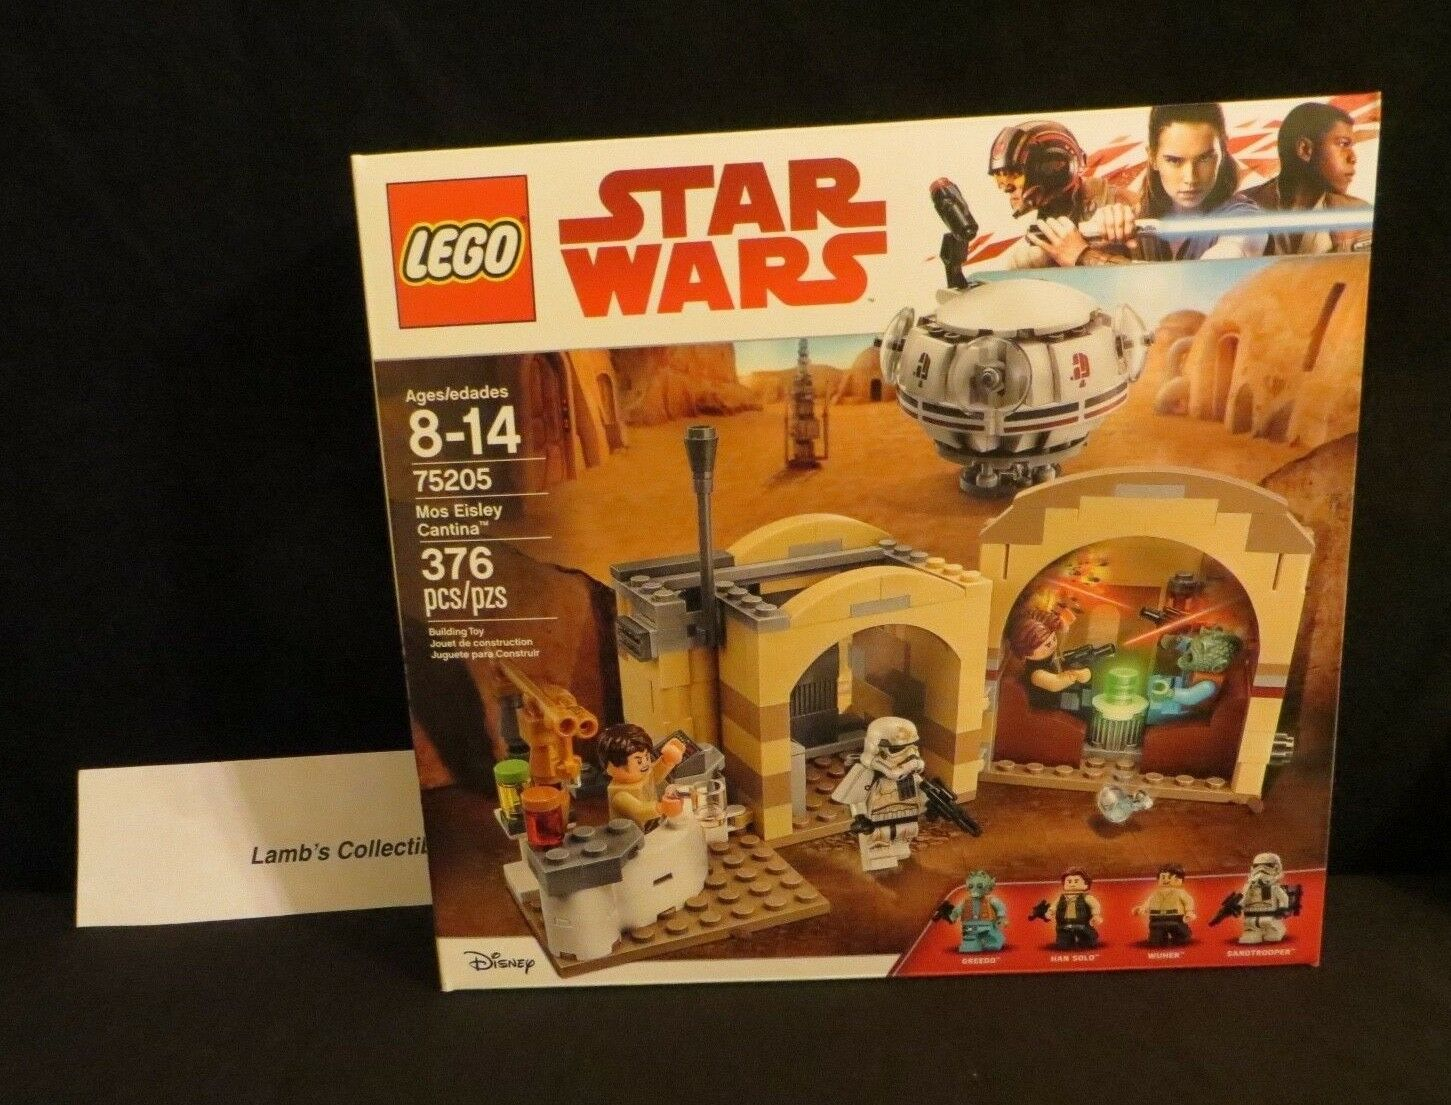 Primary image for LEGO Star Wars Disney 75205 Mos Eisley Cantina 376 pieces building blocks toys